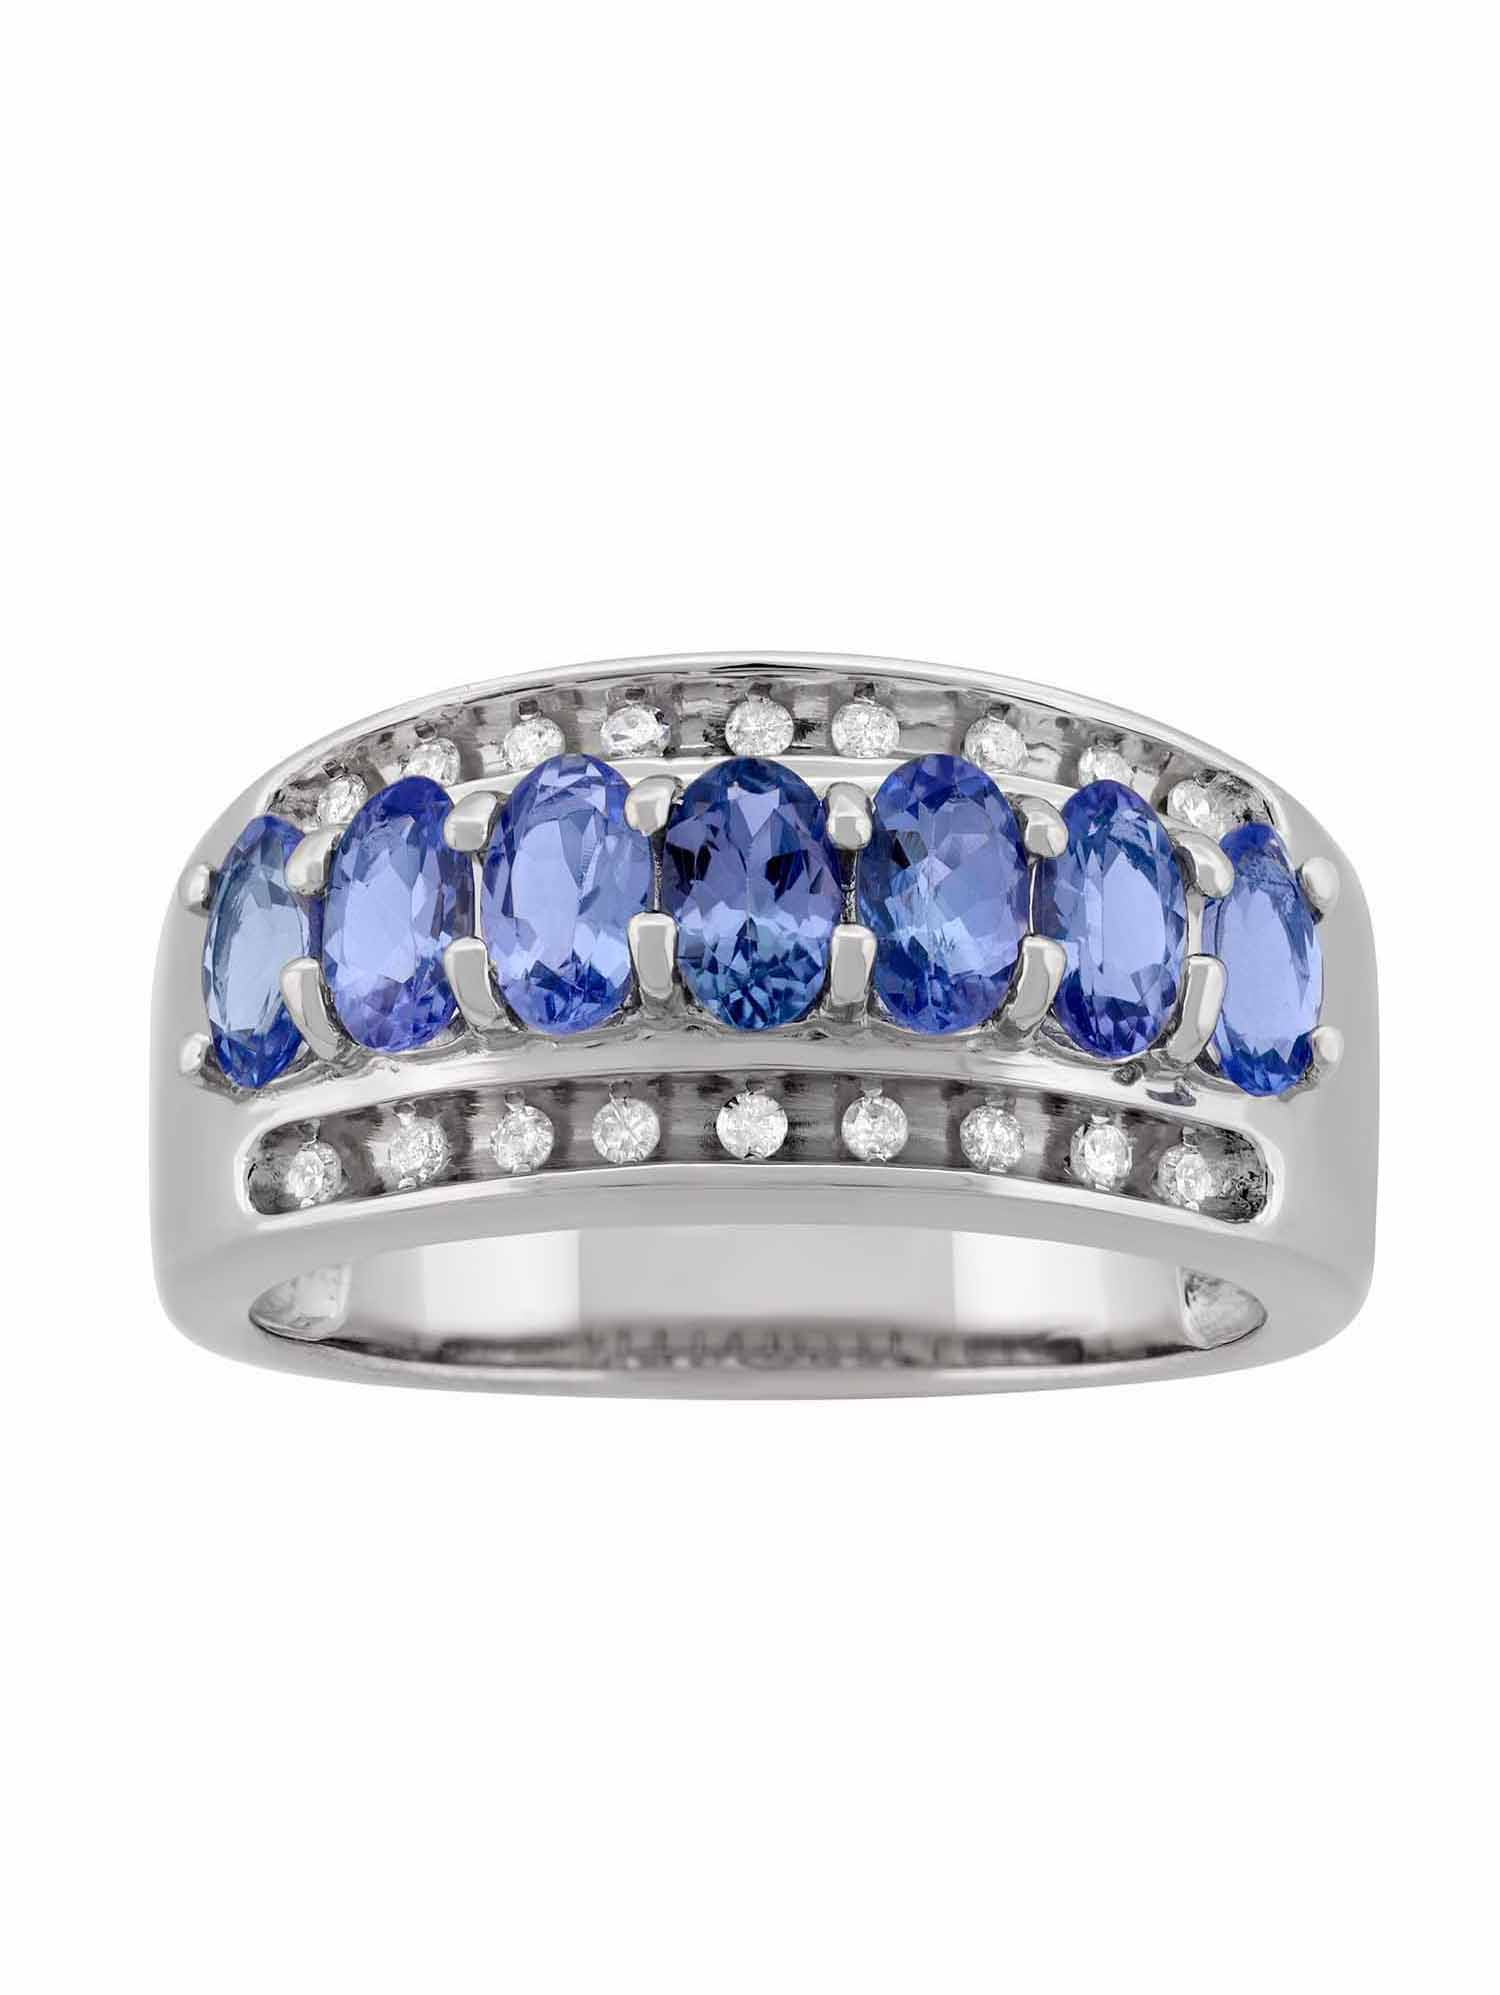 .14 Carat T.W. Diamond and Tanzanite Sterling Silver Oval Ring by Helen Andrews Inc.